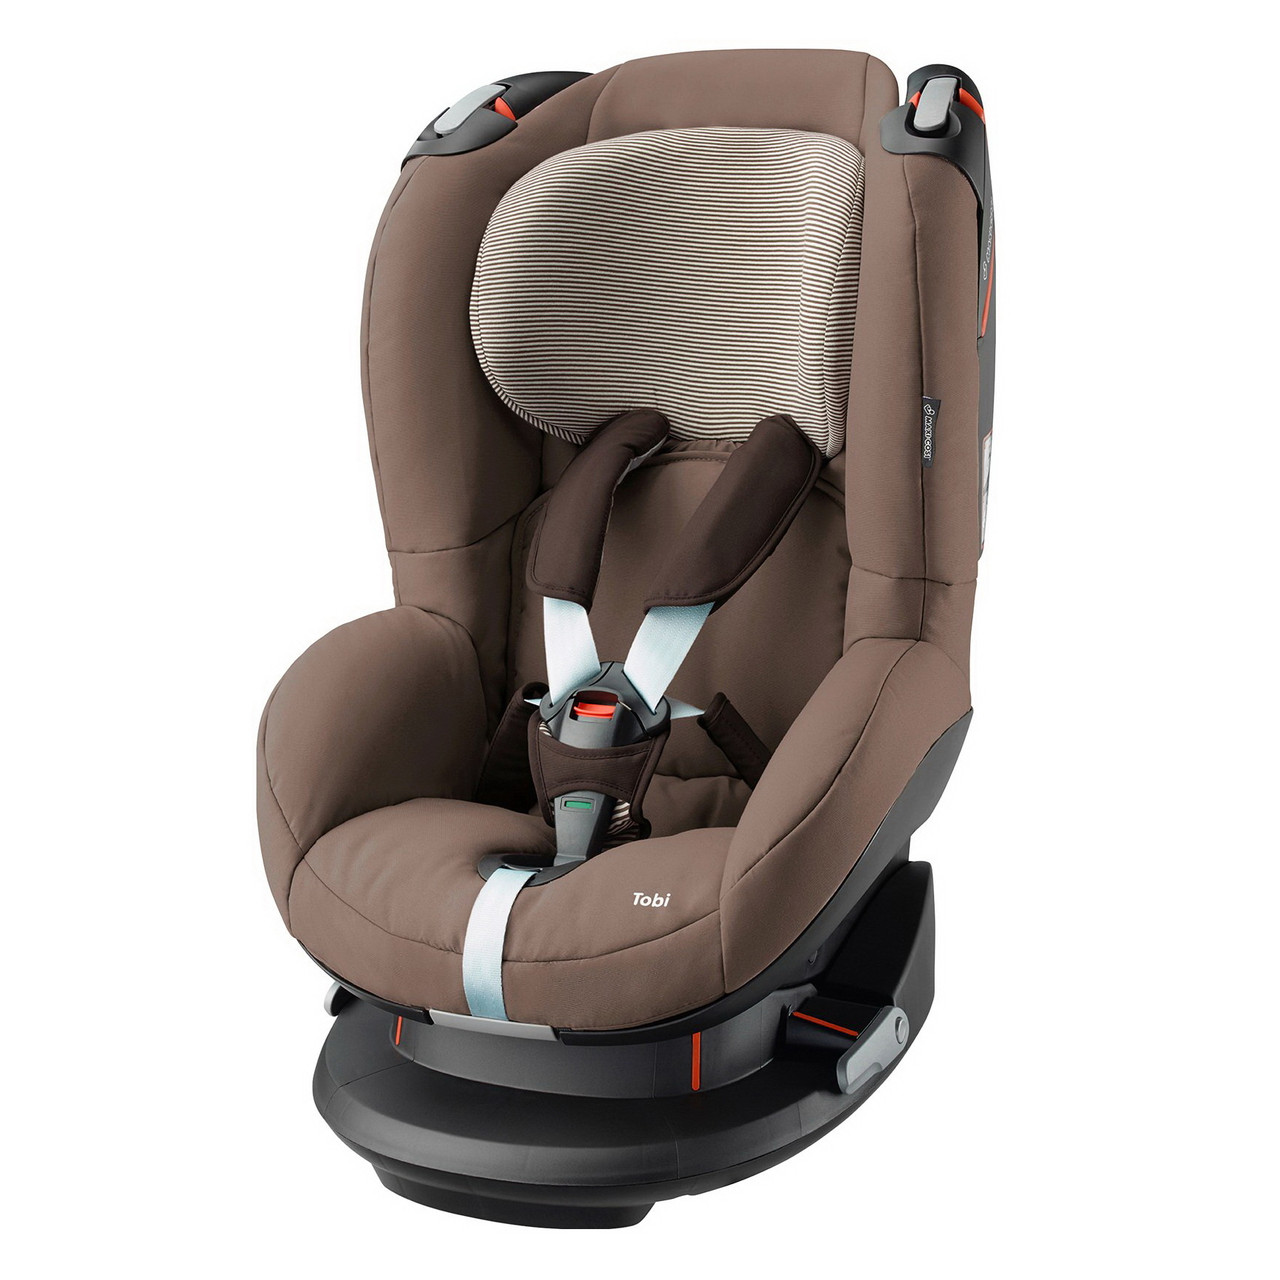 Автокресло Maxi Cosi Tobi 9-18 кг (60108980) Earth Brown (коричневый)